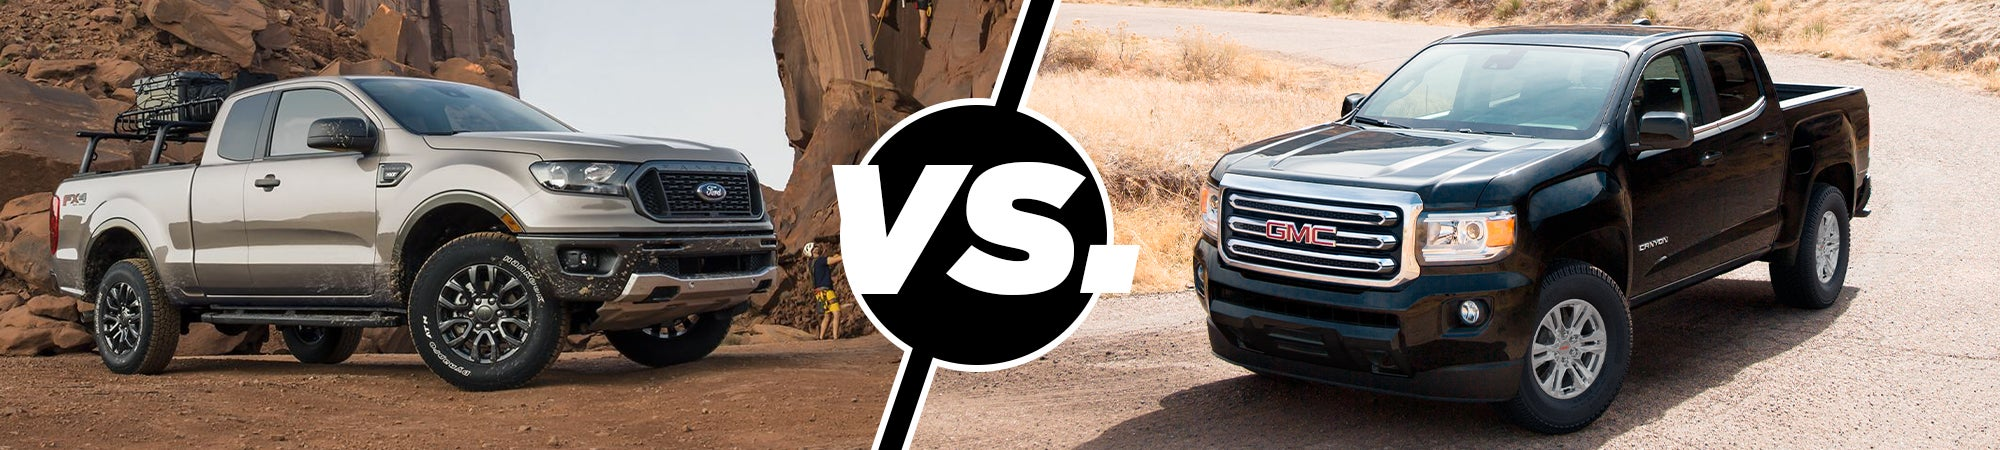 2019 Ford Ranger XL Vs  2019 GMC Canyon SL | Western Slope Ford